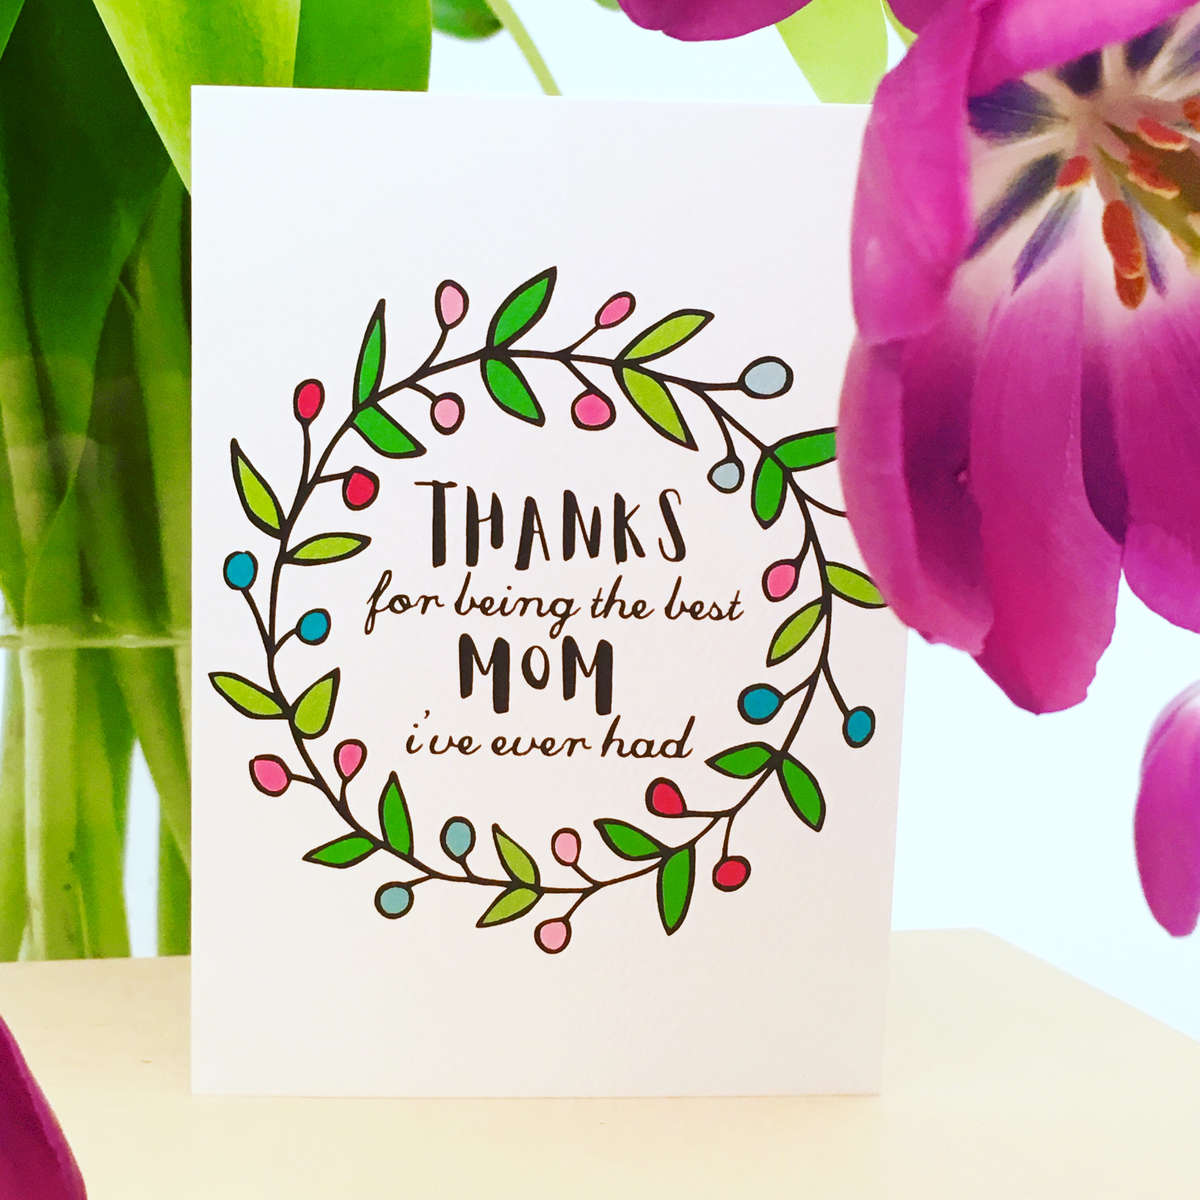 Thanks Mom Mothers Day Fathers Day Greeting Cards Super Fun